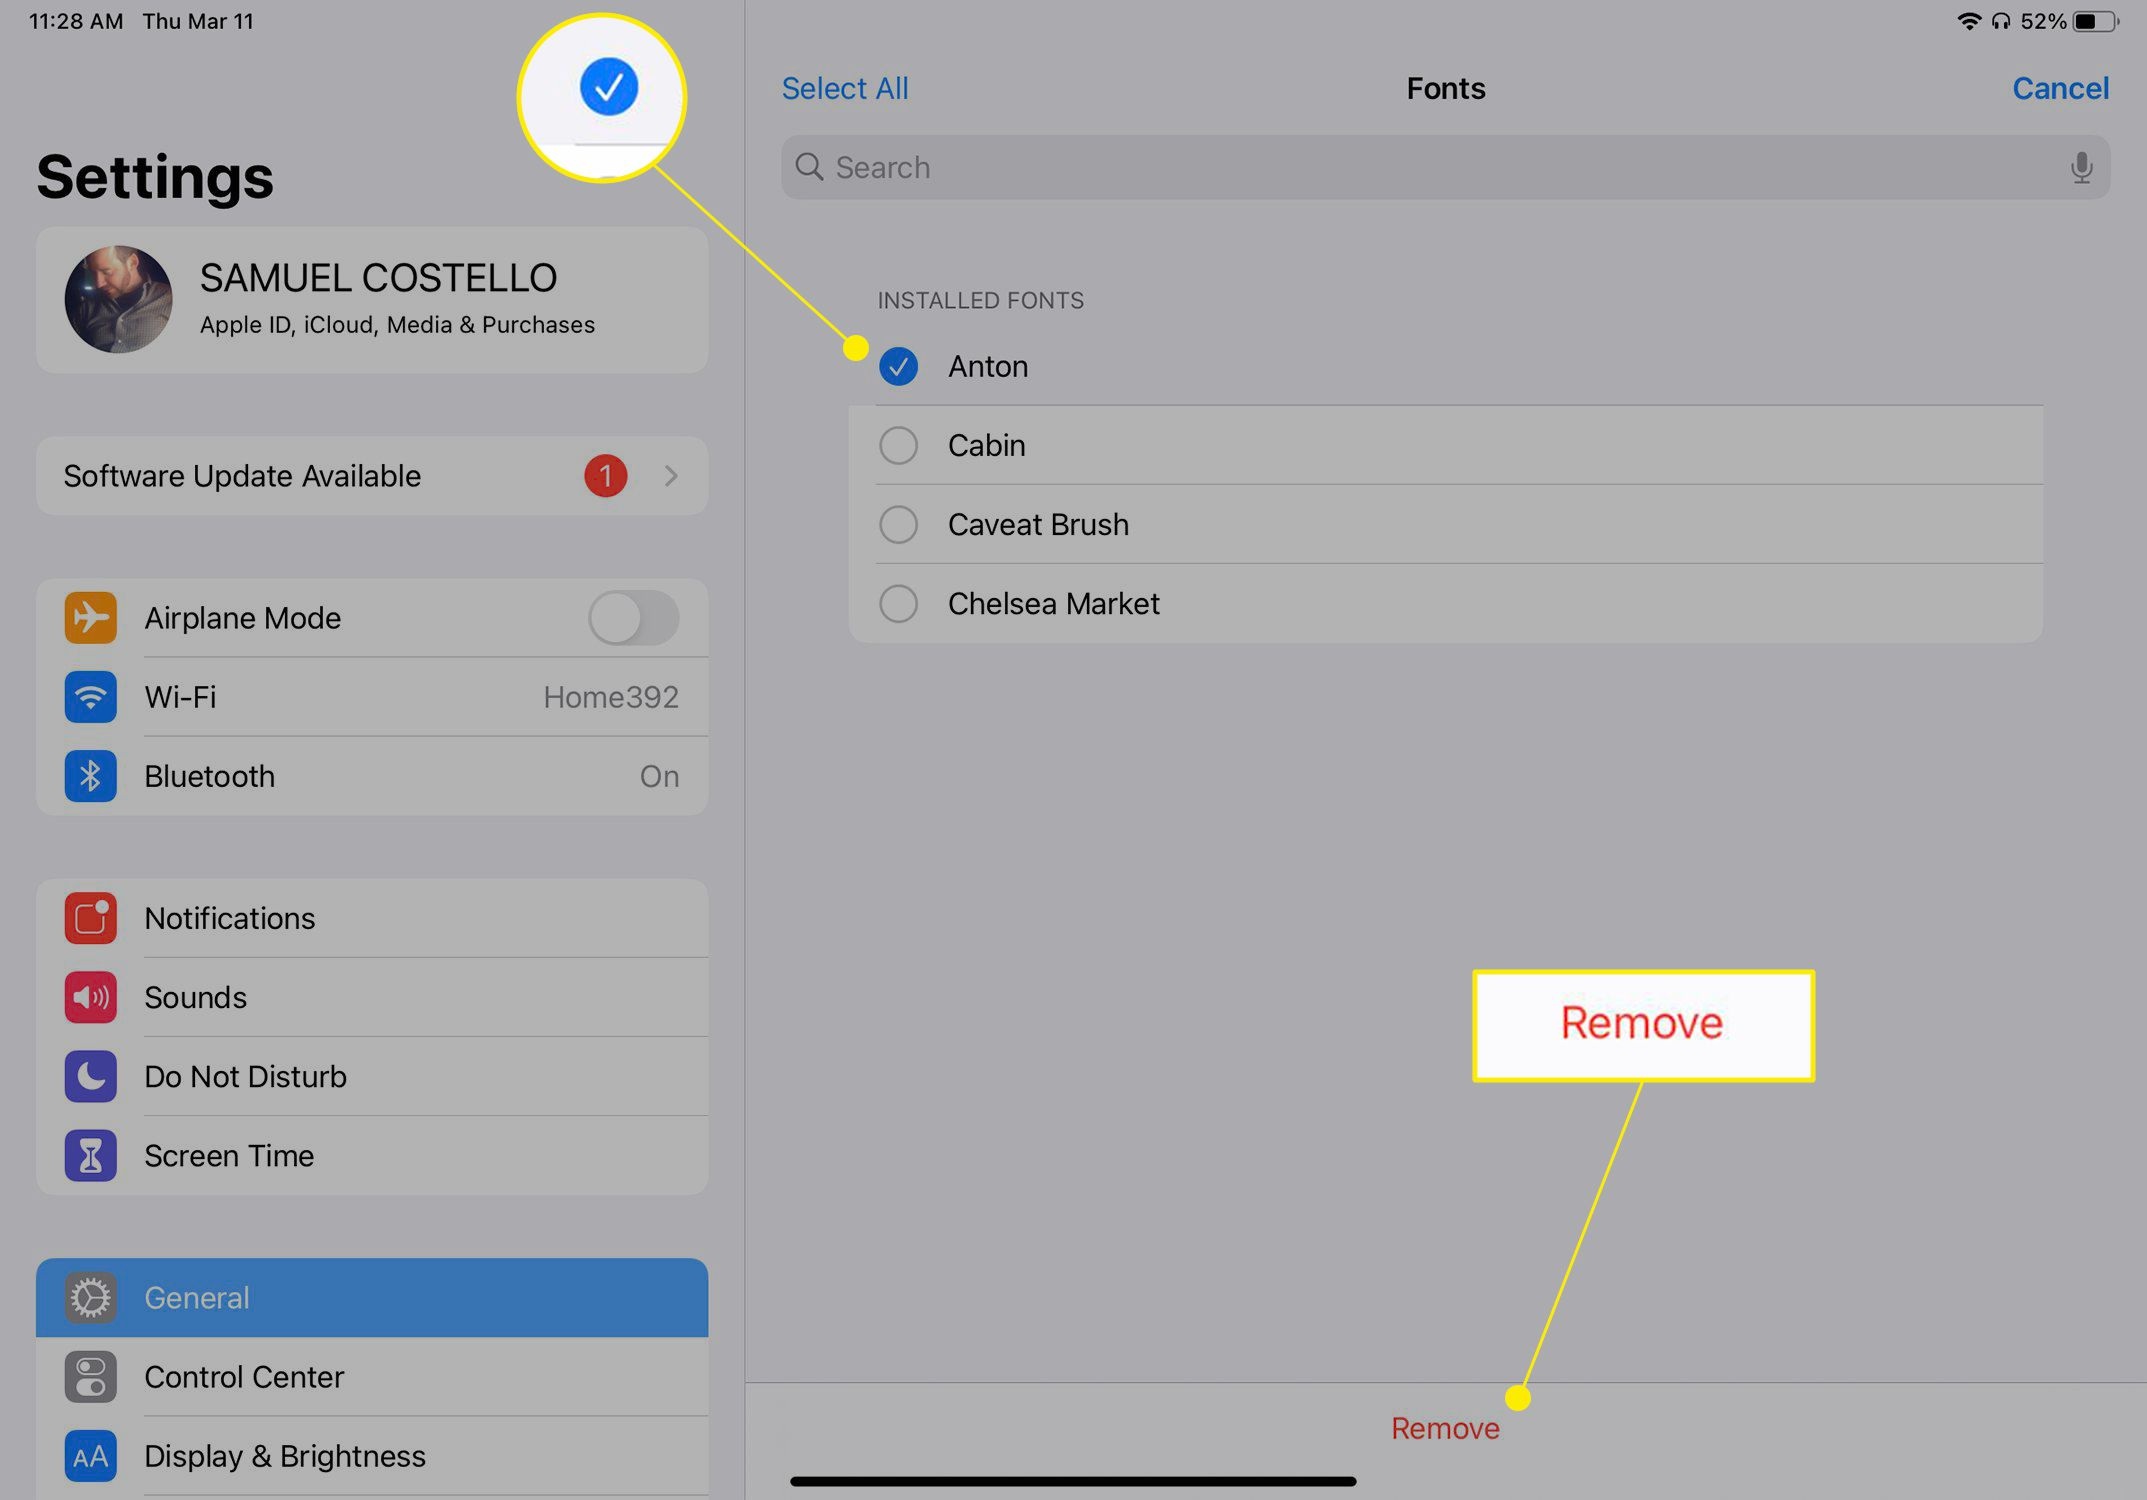 iPad font settings with the